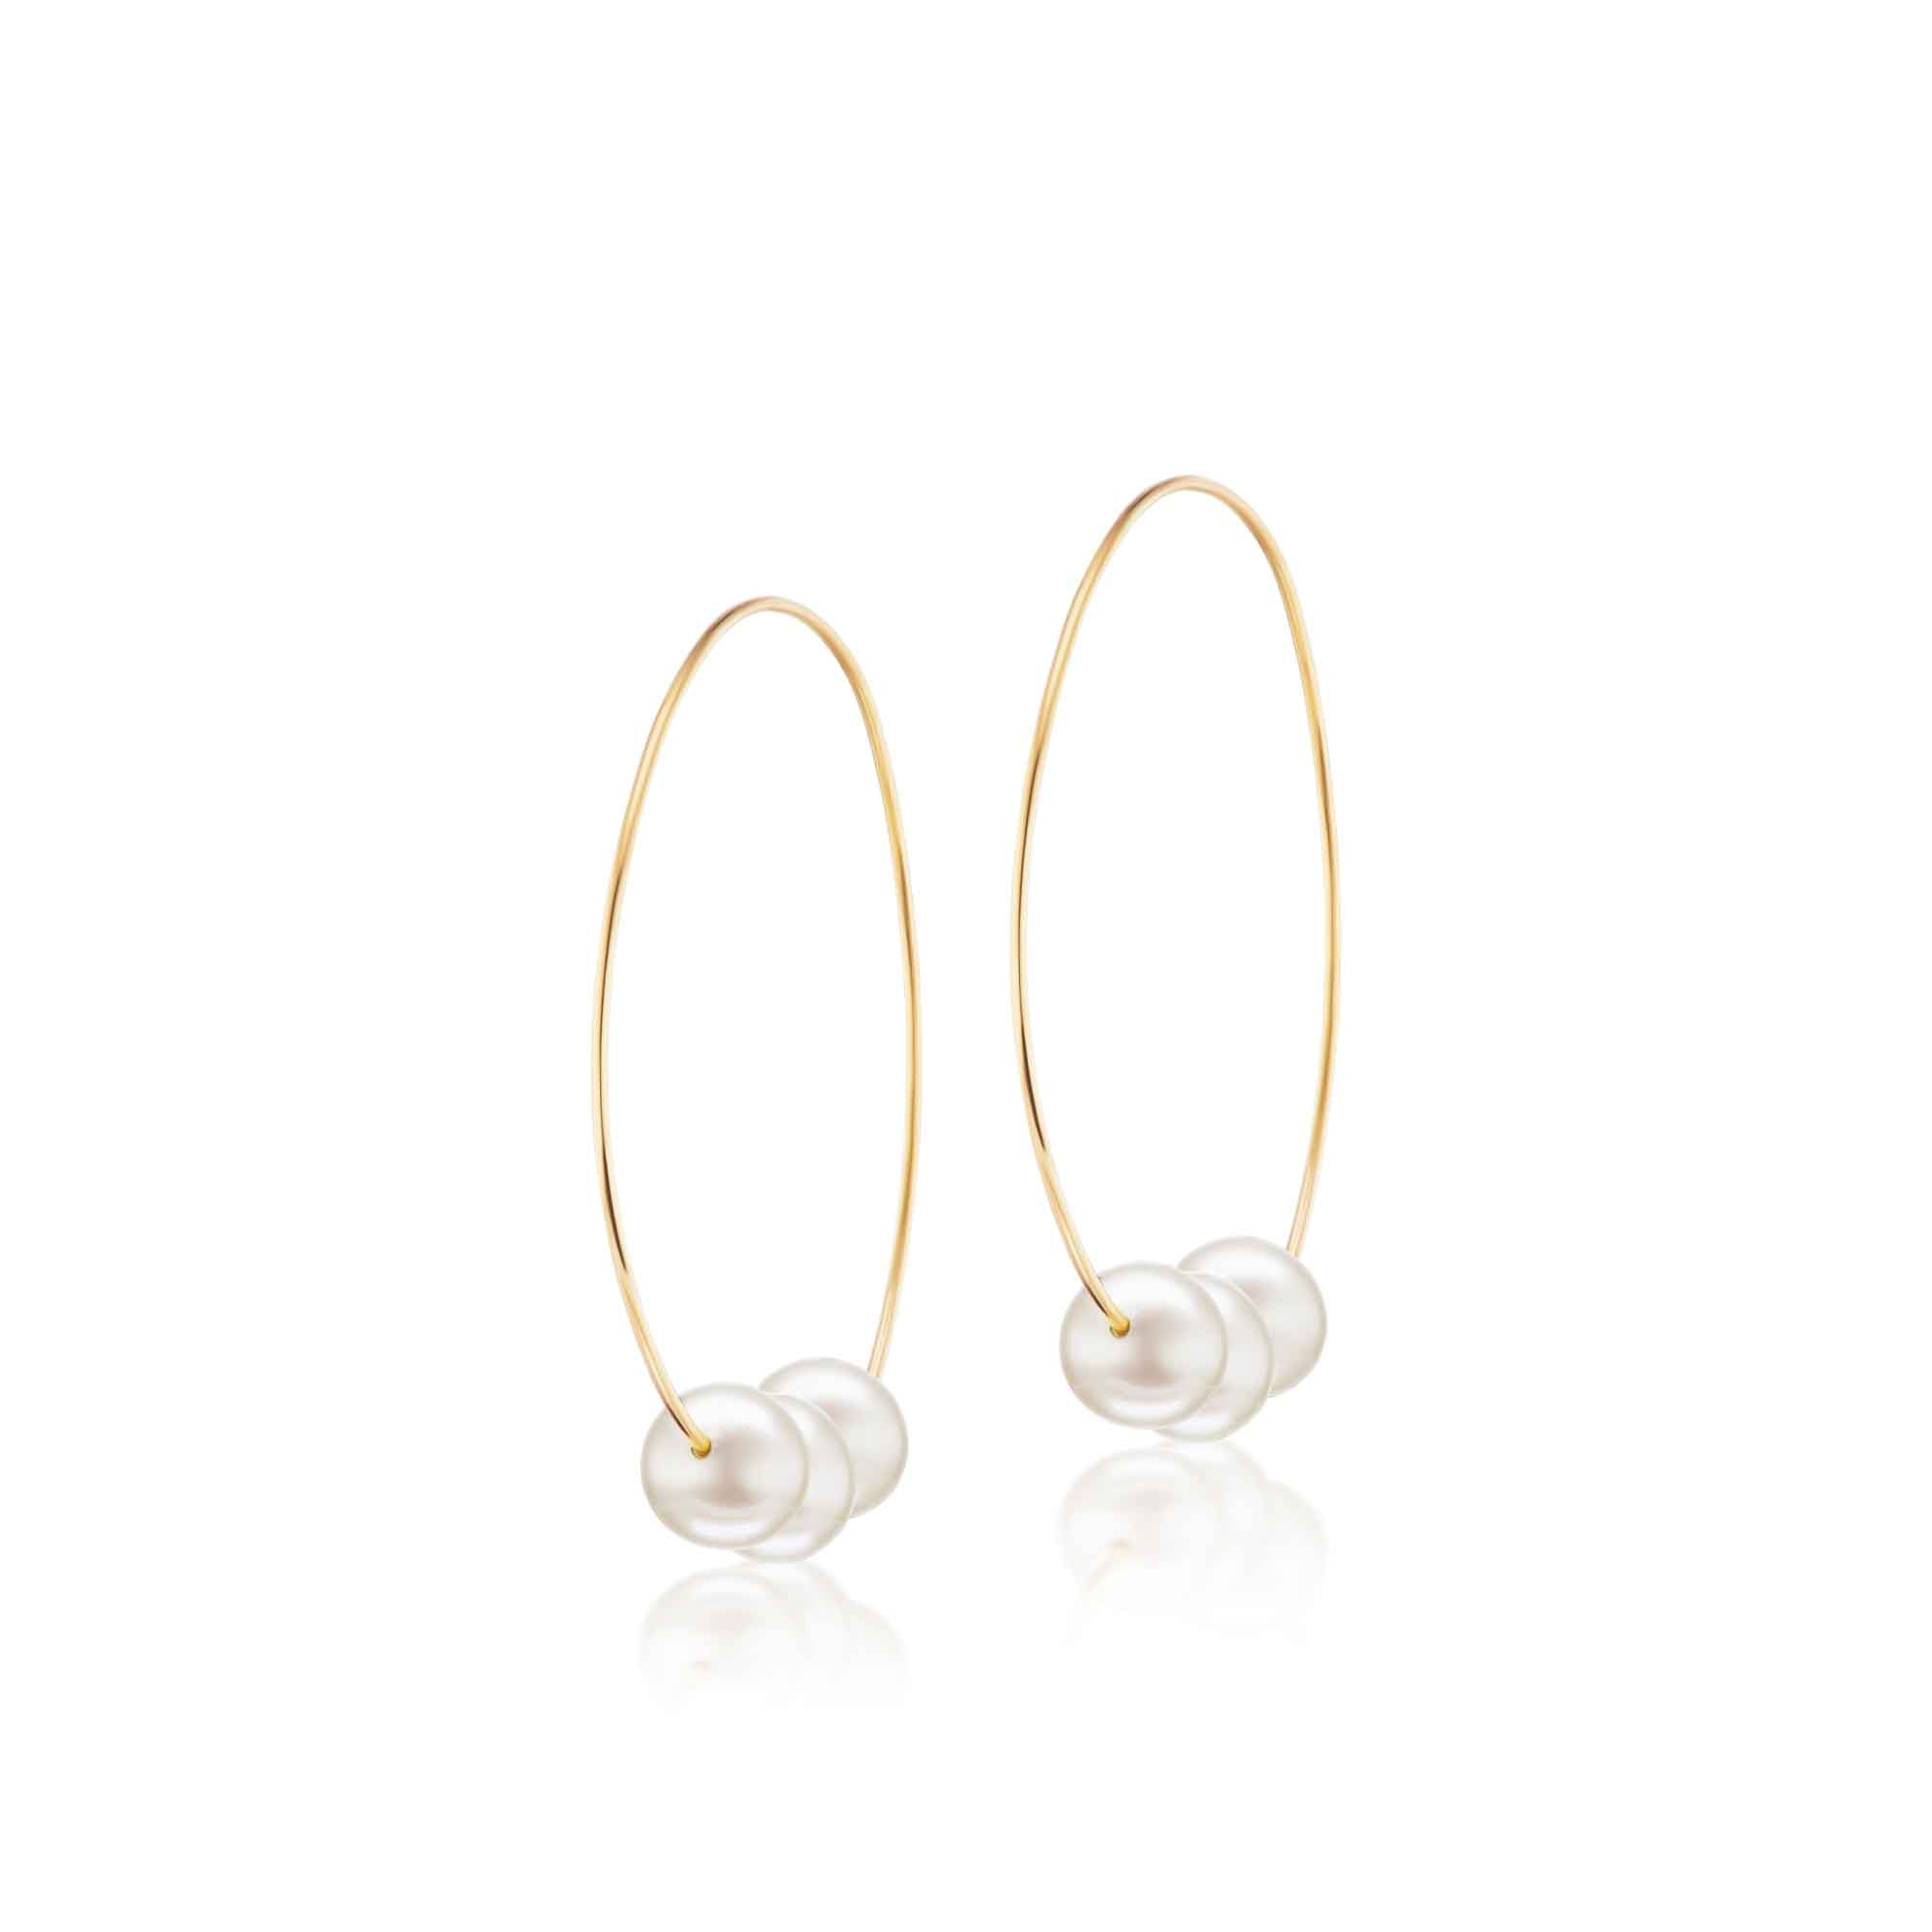 The Medium Floating Pearl Earring